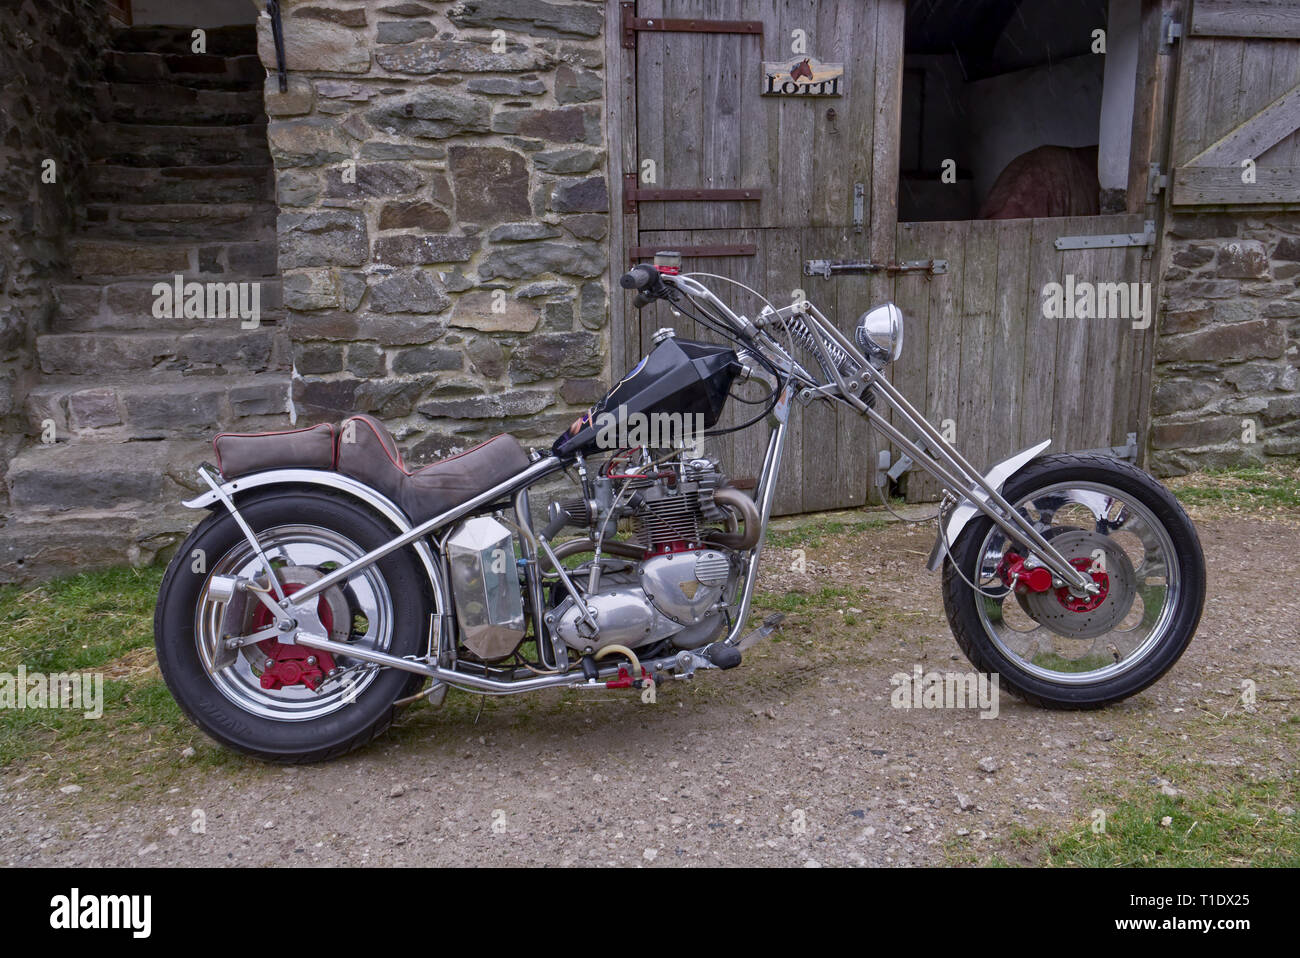 Custom chopper motorcycle, Triumph 750cc Bonneville parked near an old stone built stable on a farm in North Wales. - Stock Image